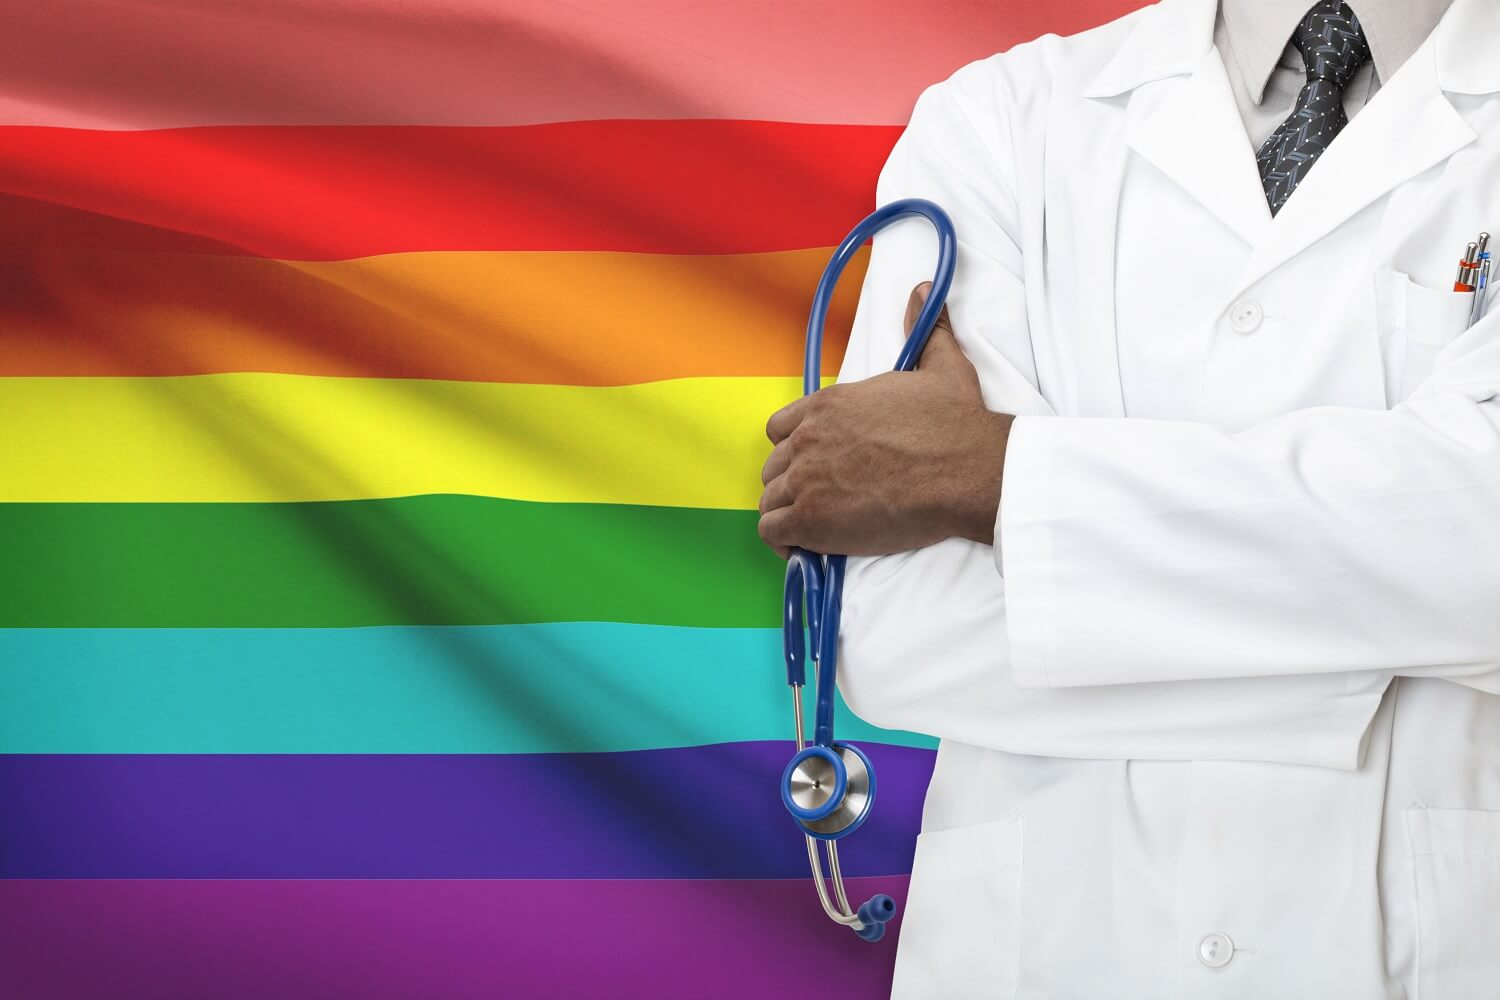 A doctor standing in front of an LGBT flag